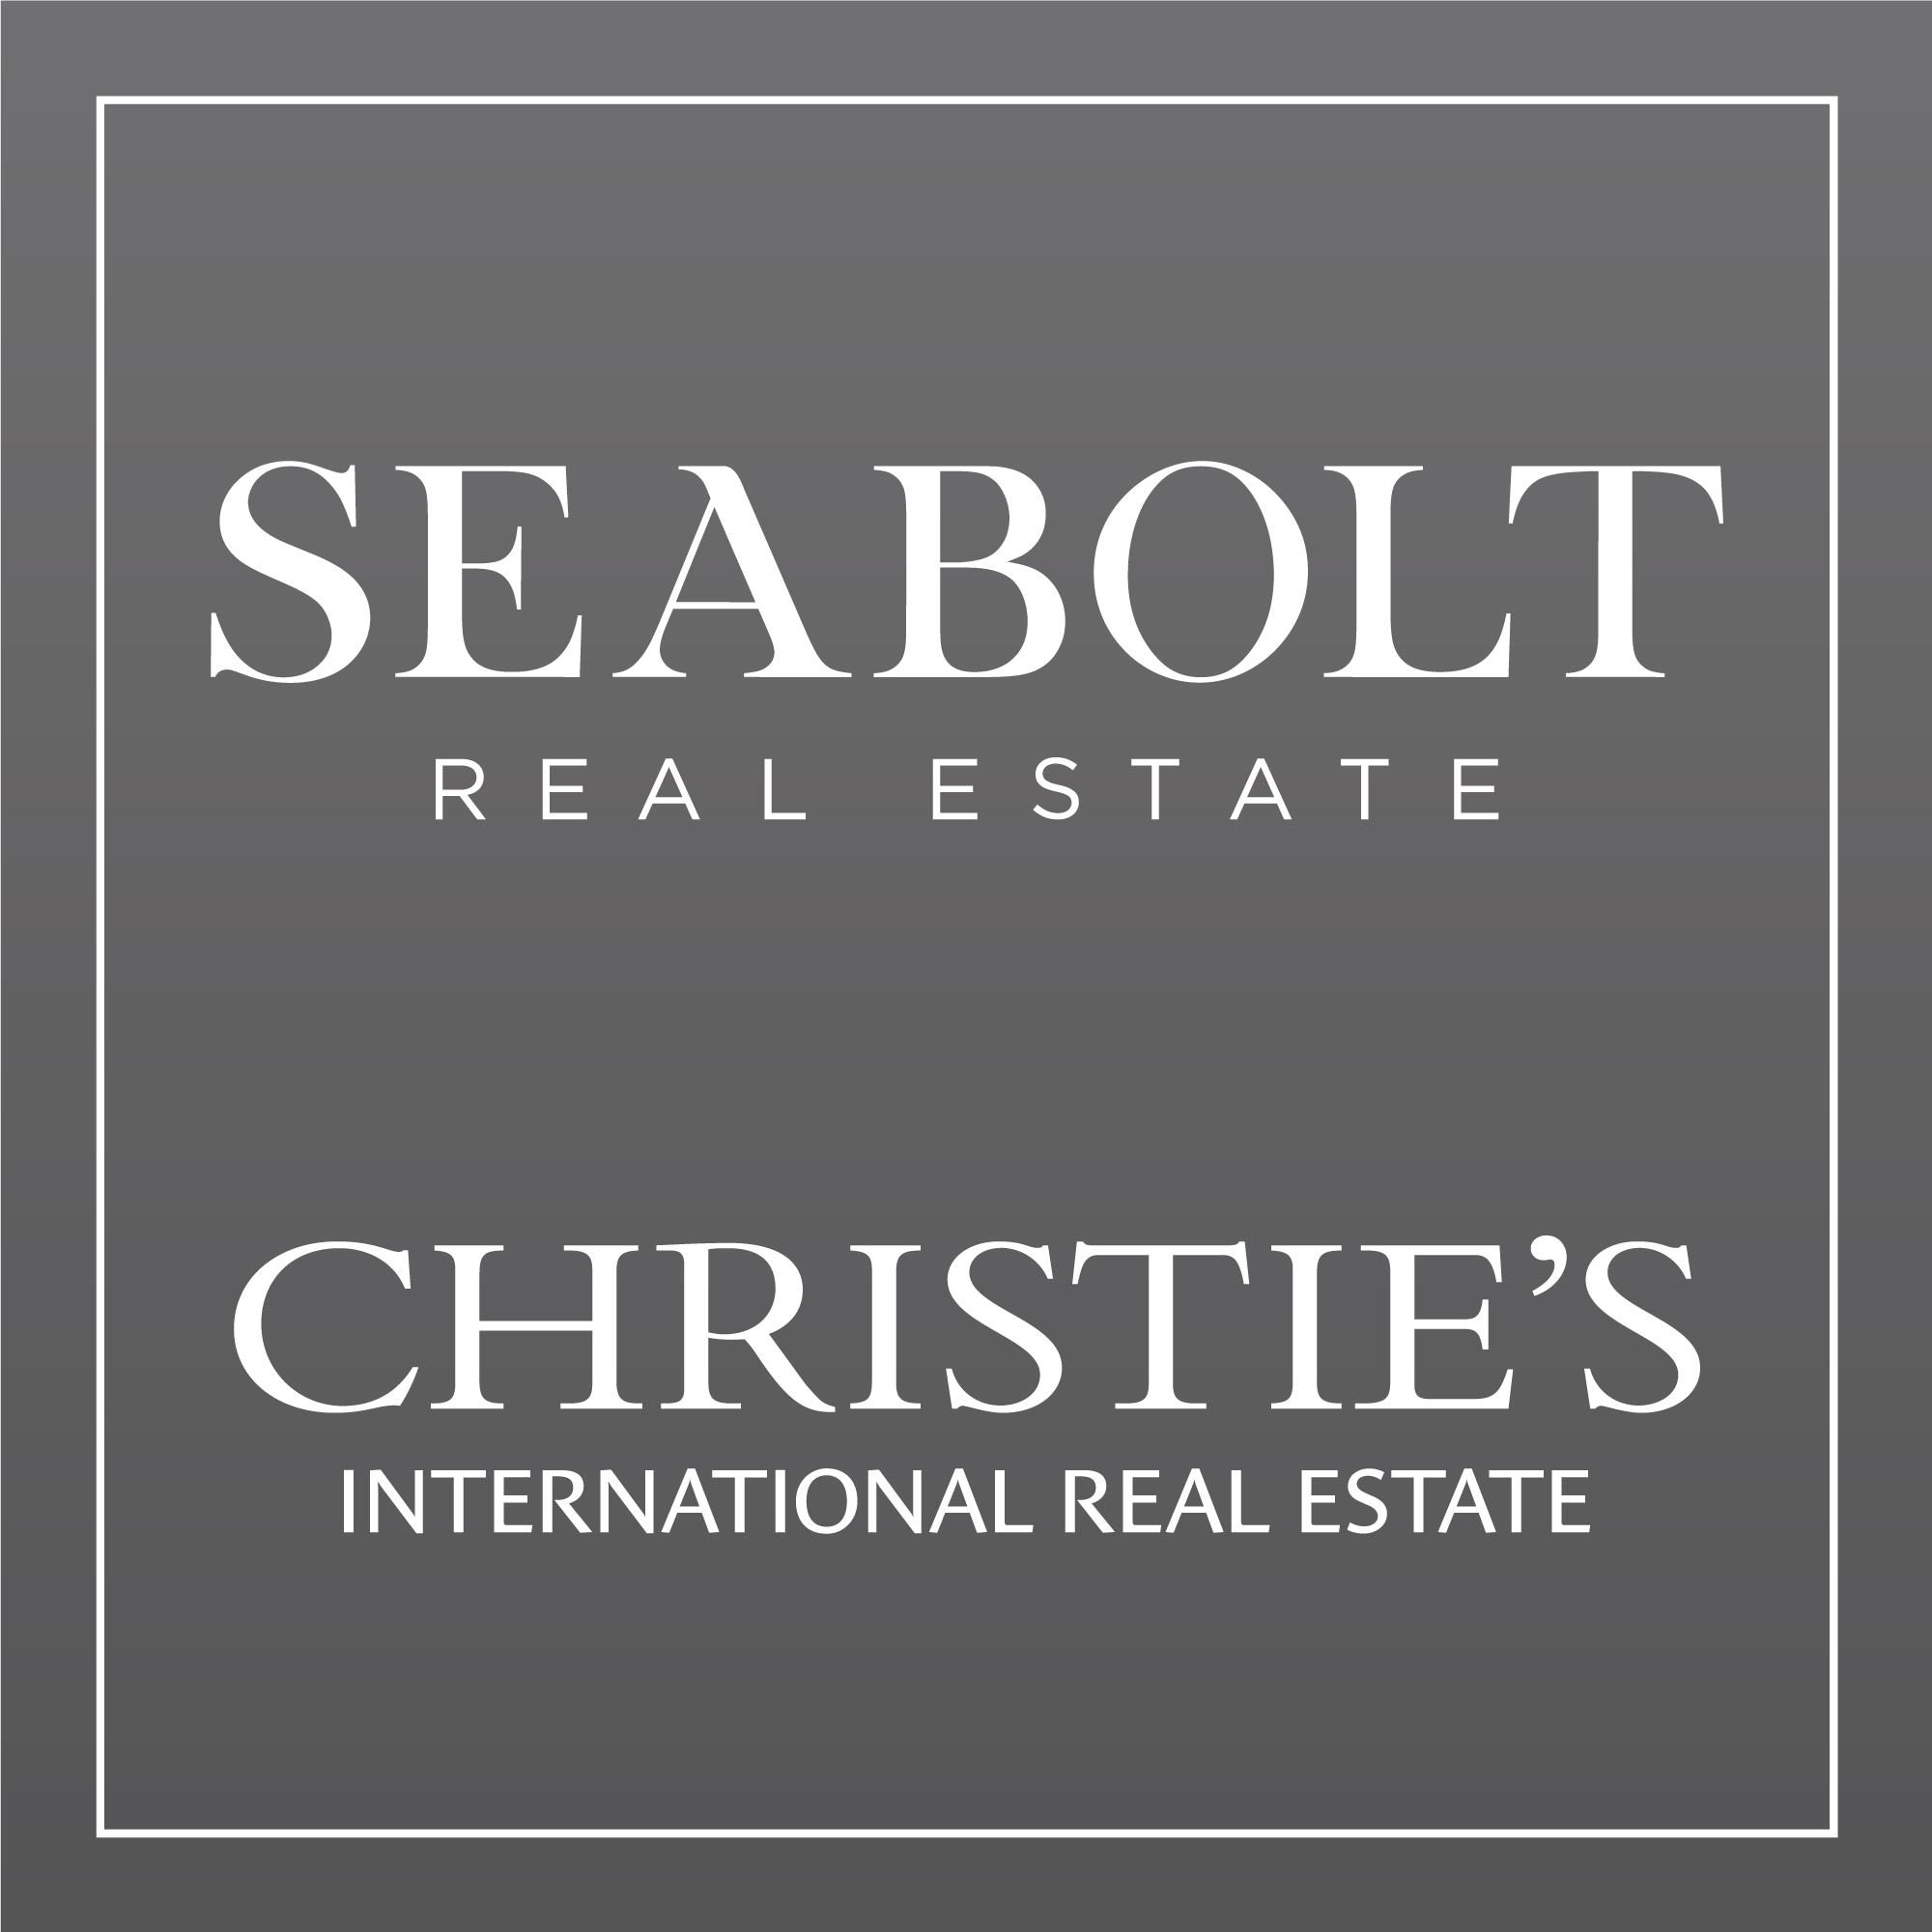 Seabolt Real Estate